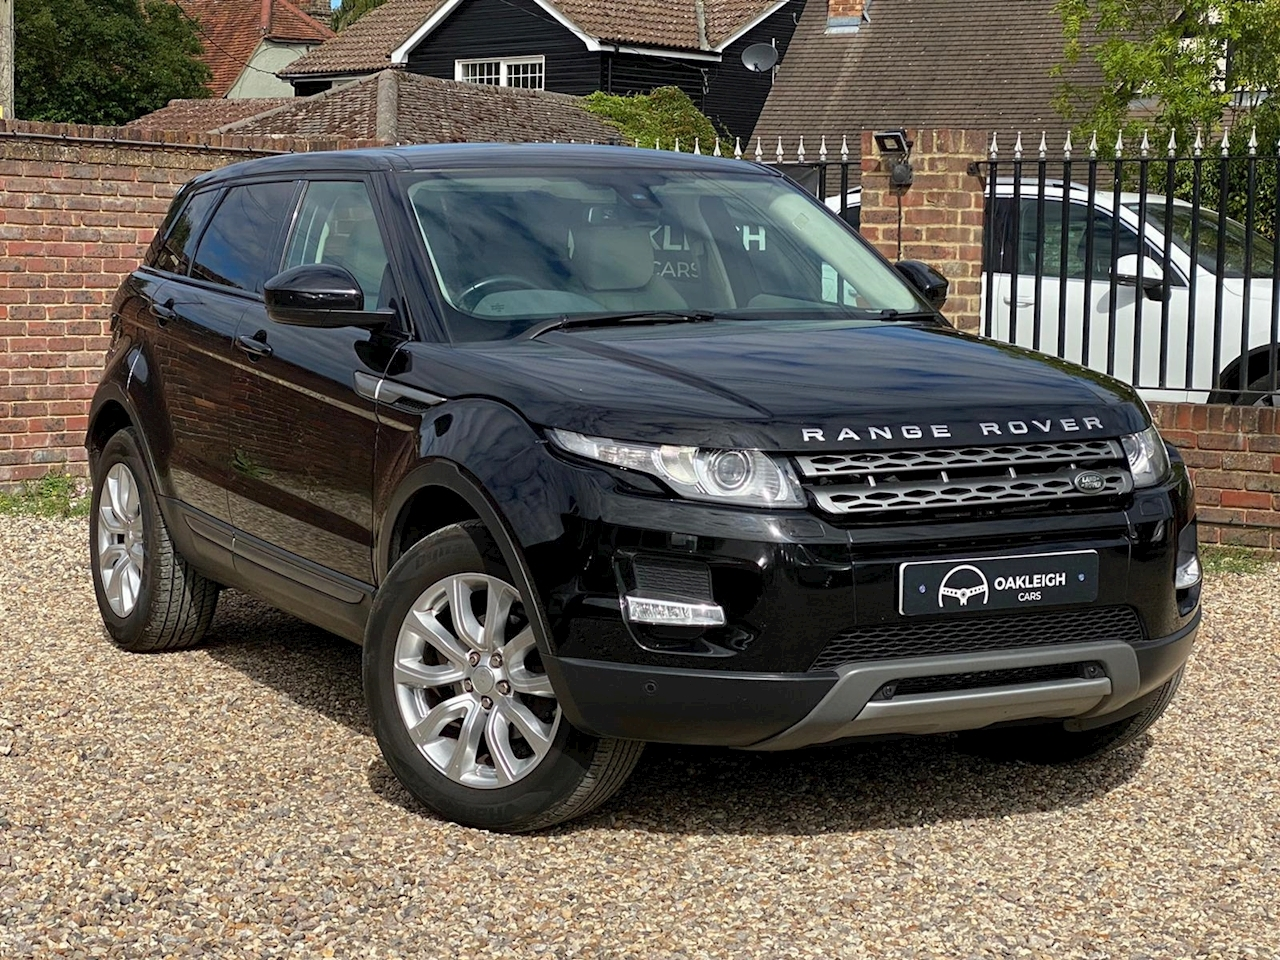 Land Rover Range Rover Evoque Pure Tech 2.2 5dr SUV Manual Diesel